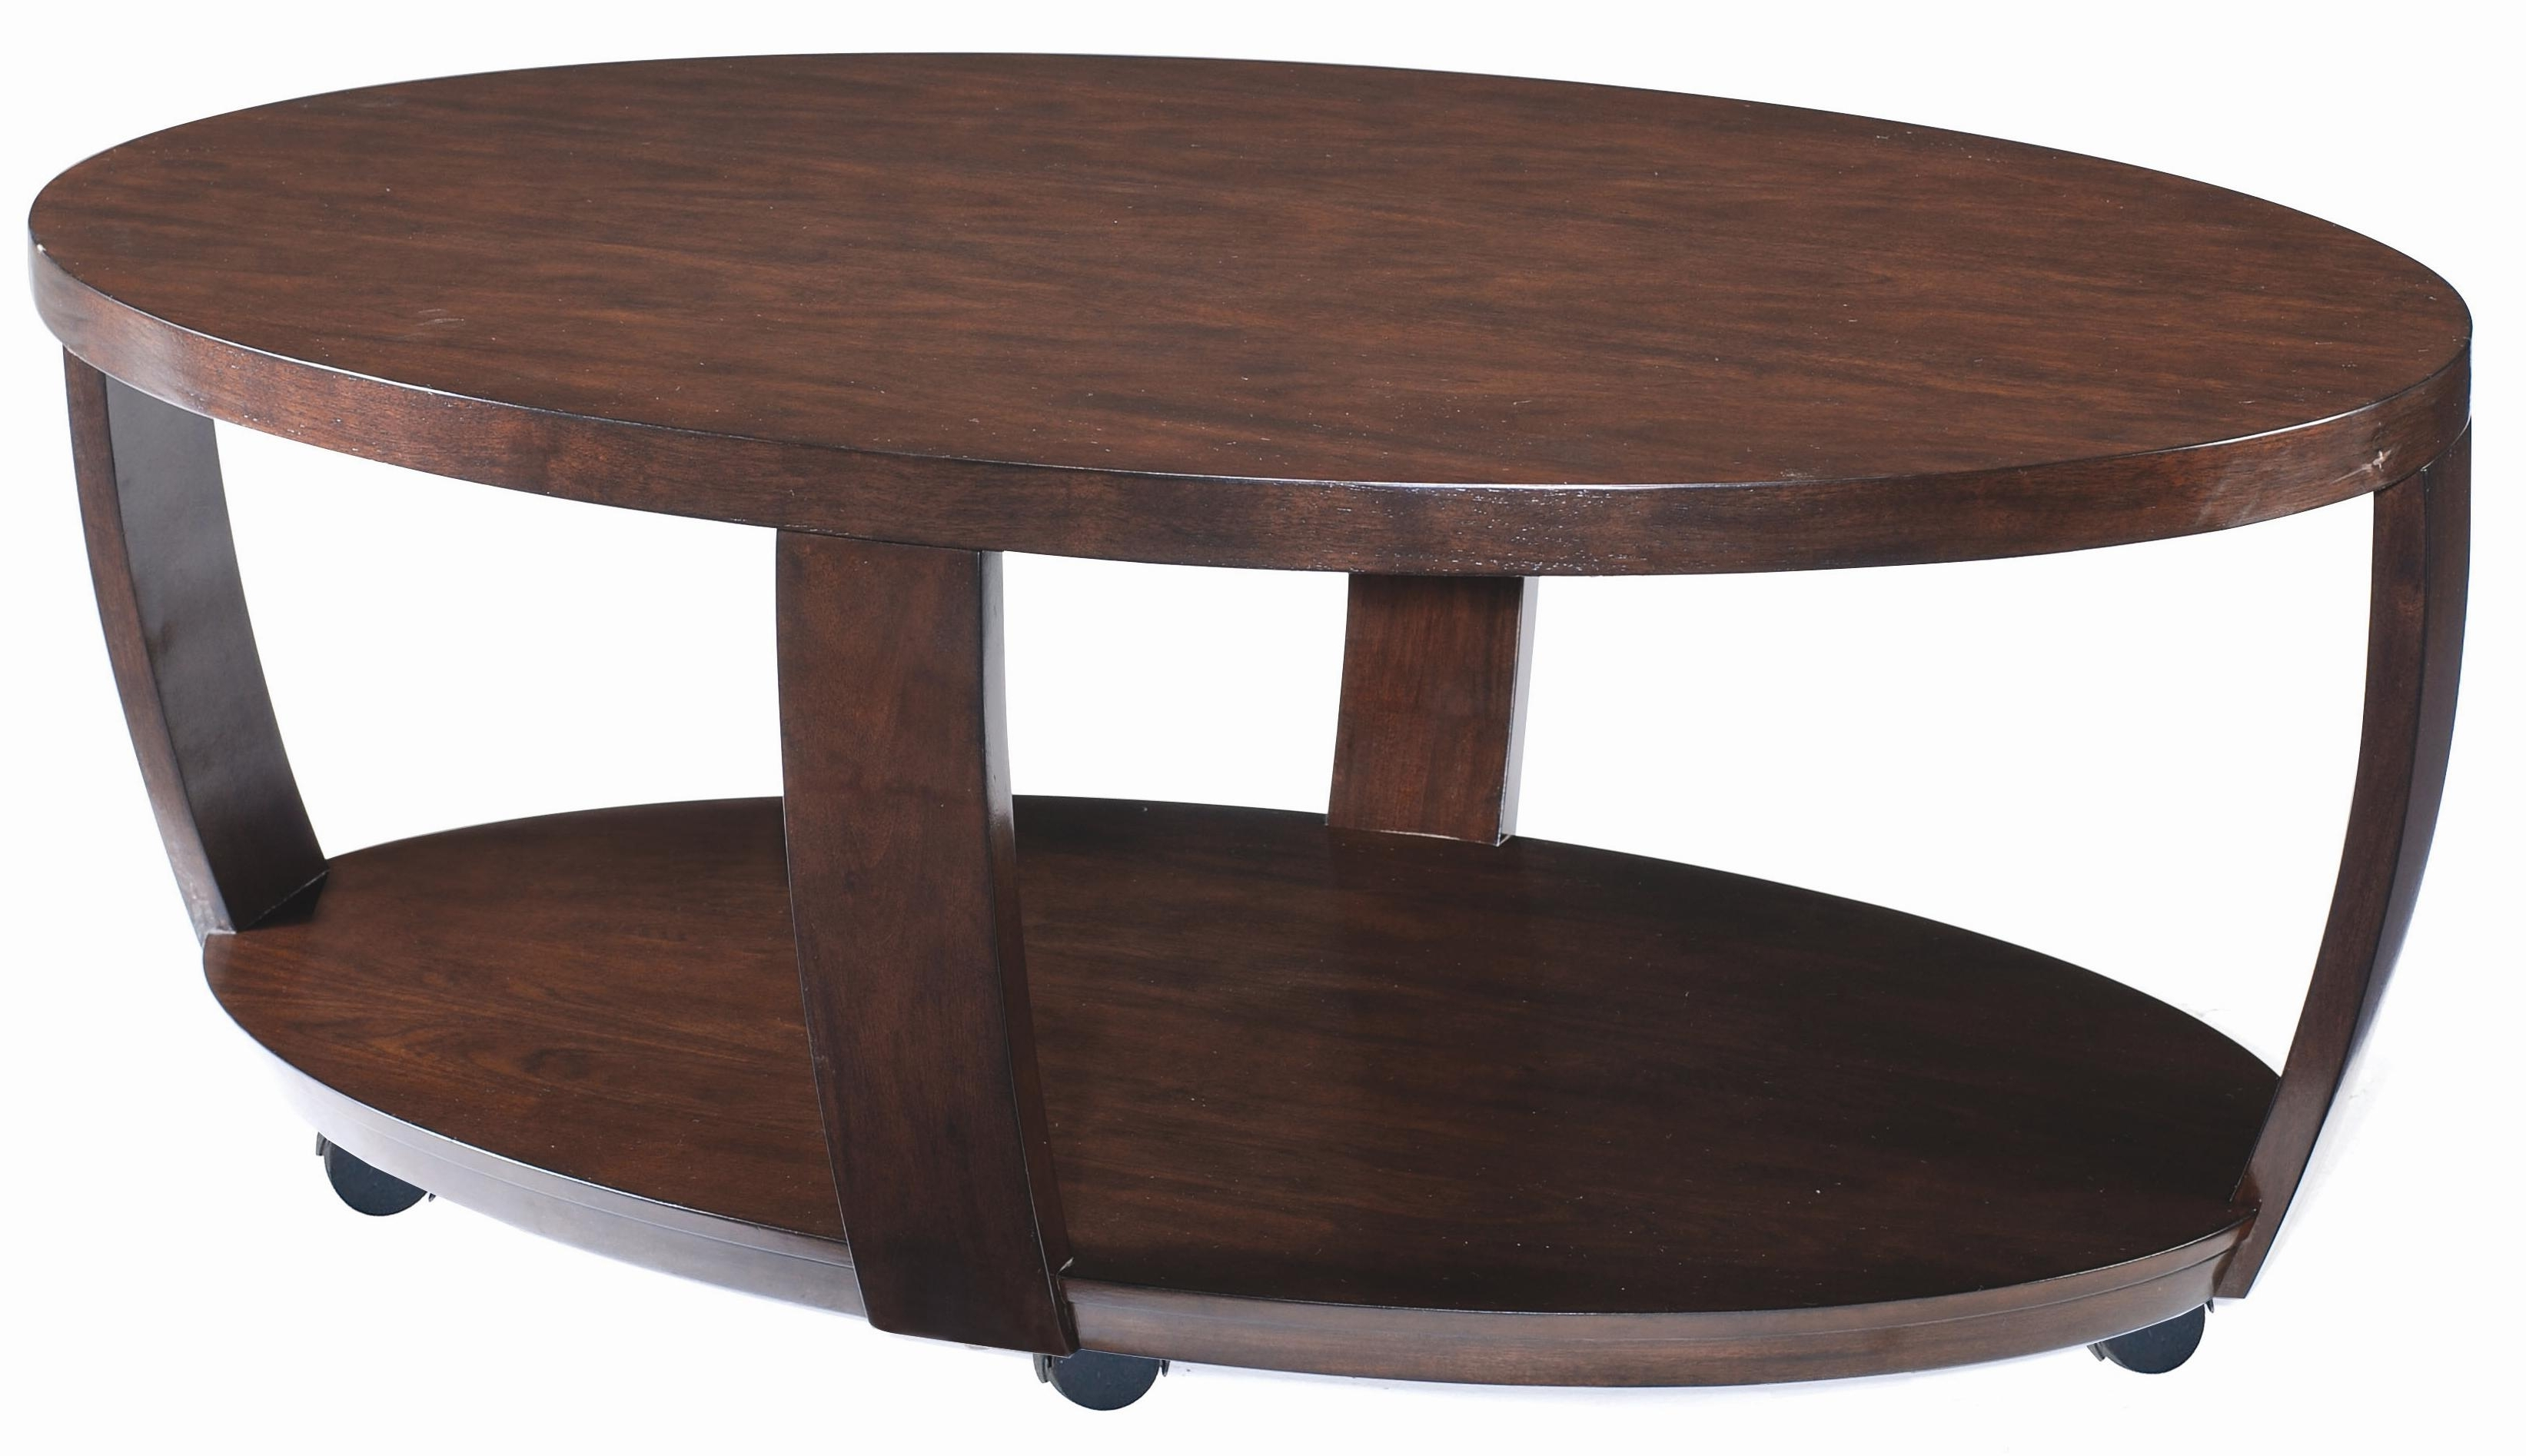 Magnussen Home Sotto Oval Cocktail Table With Casters – Ahfa With Latest Ontario Cocktail Tables With Casters (View 13 of 20)